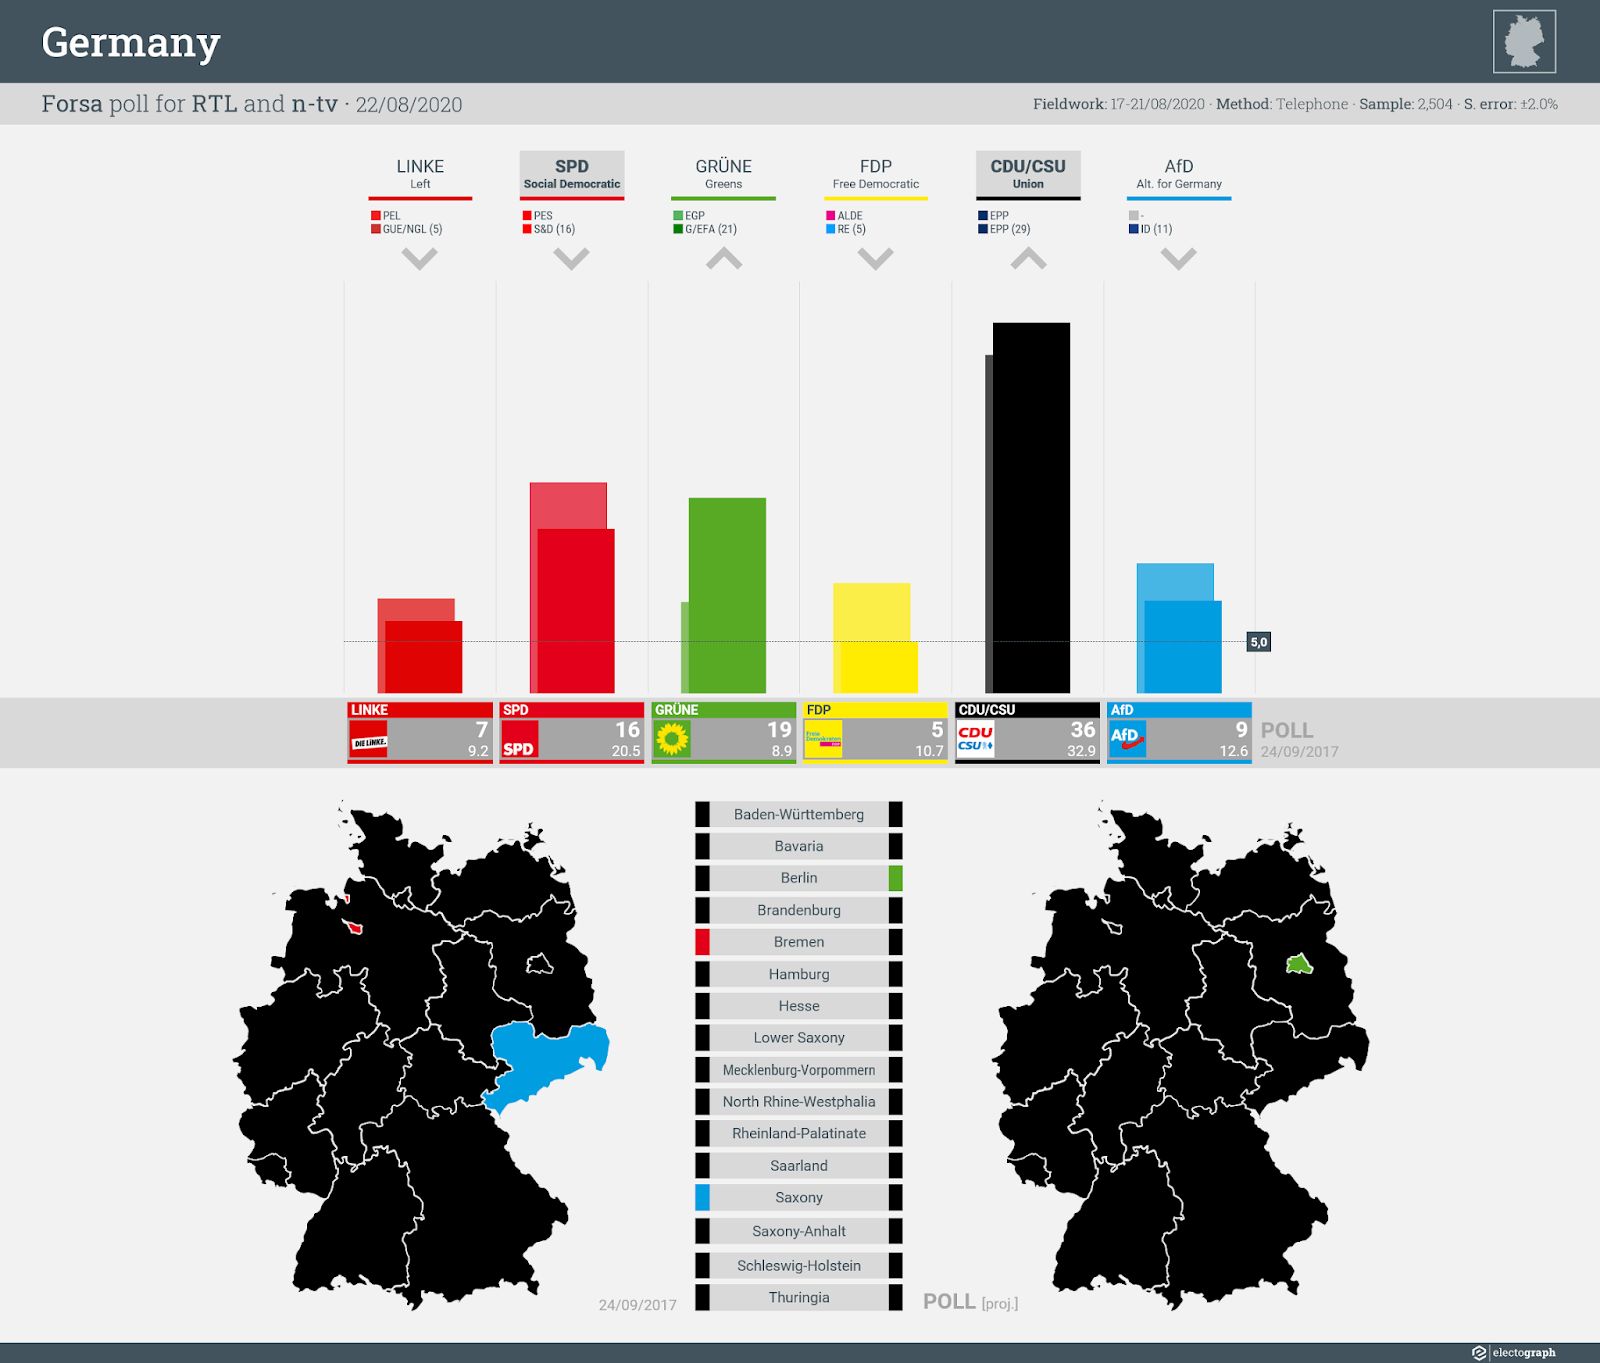 GERMANY: Forsa poll chart for RTL and n-tv, 22 August 2020